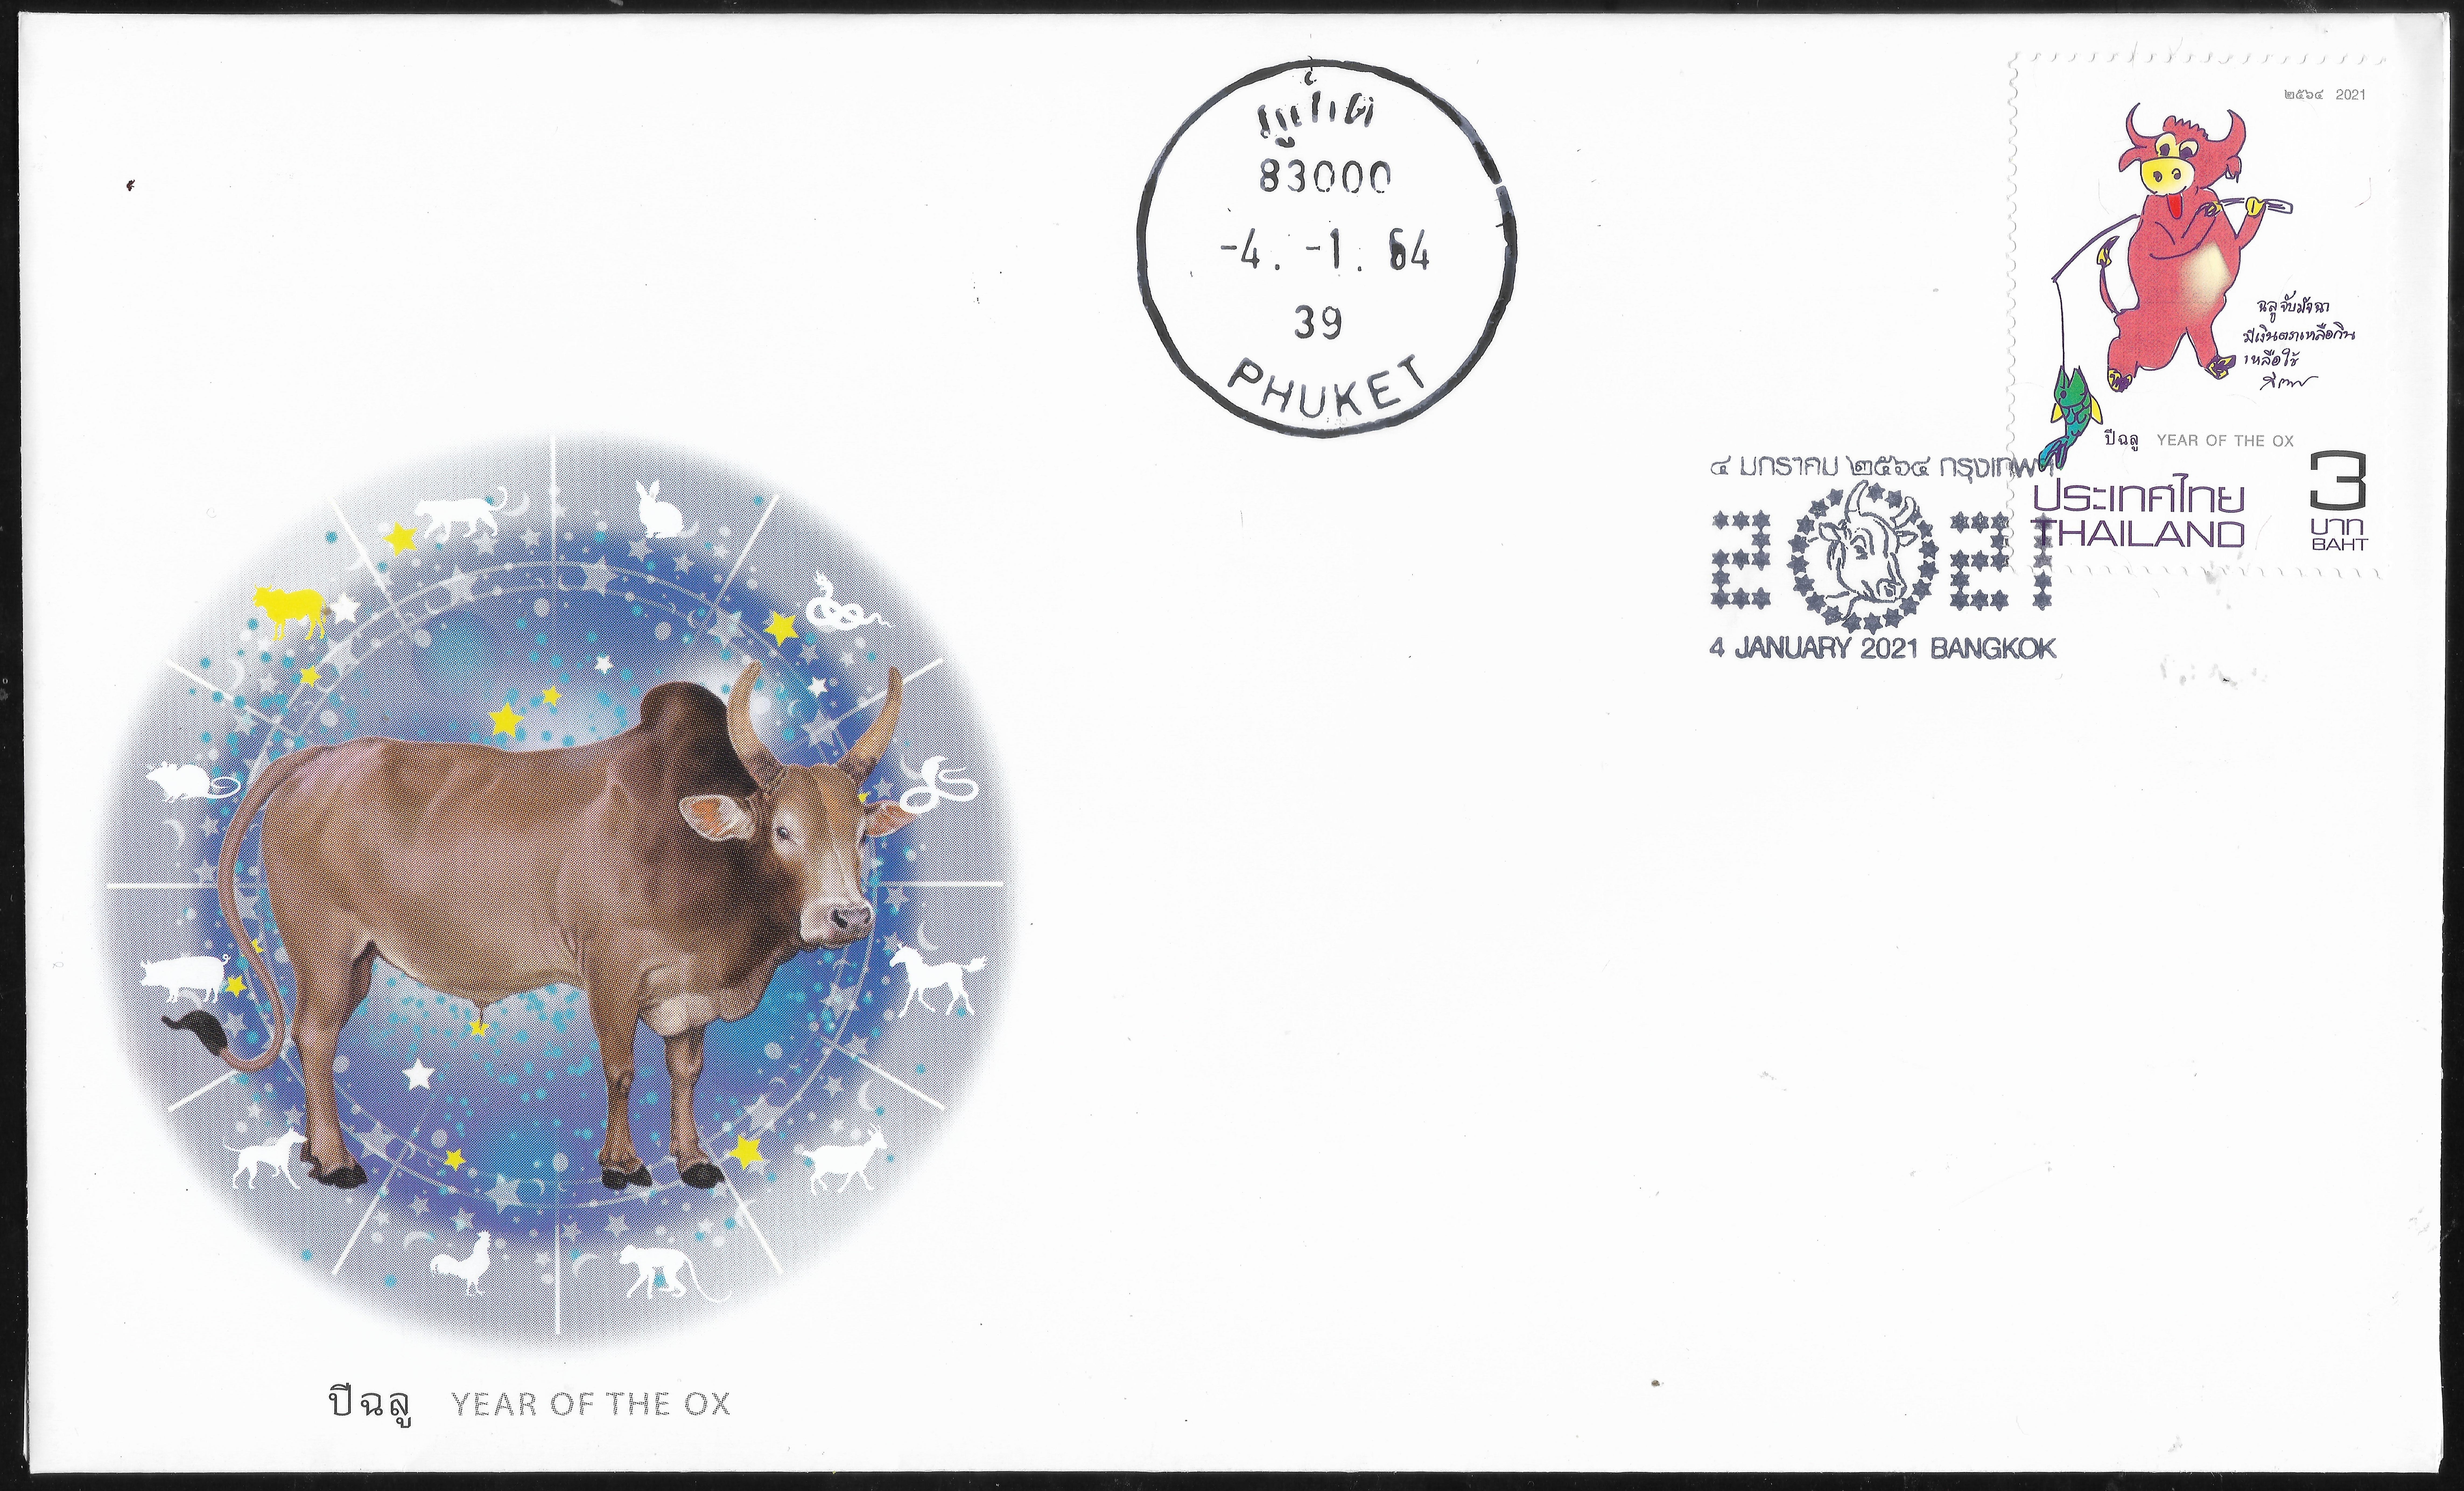 Thailand: Year of the Ox, 4 January 2021 [first day cover - front; 1200dpi scan by Mark Joseph Jochim]